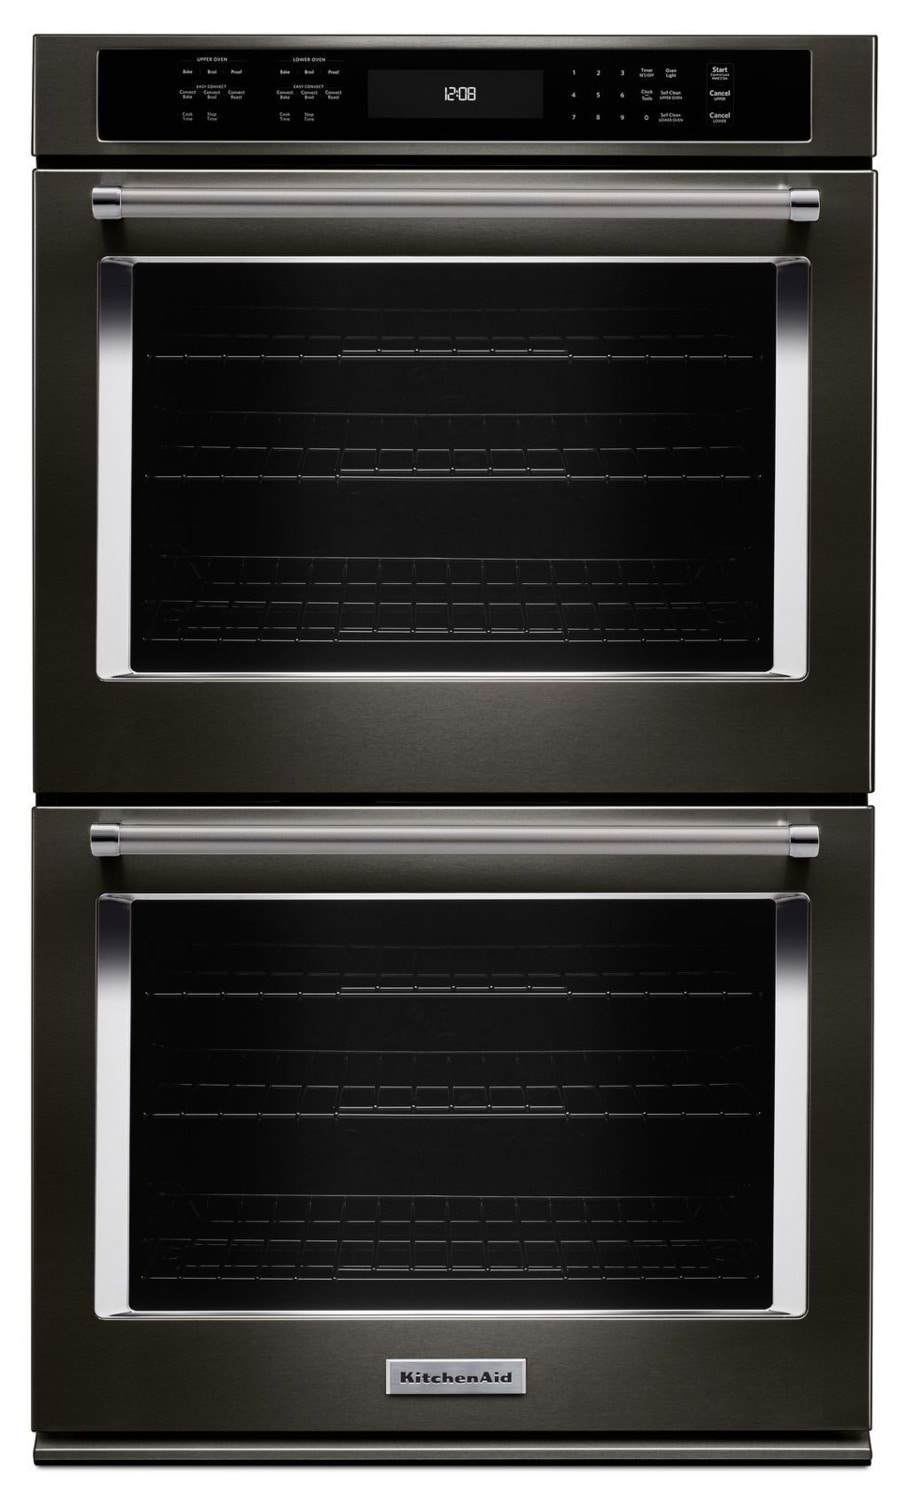 KitchenAid Black Stainless Steel Double Wall Oven (10 Cu. Ft.) - KODE500EBS